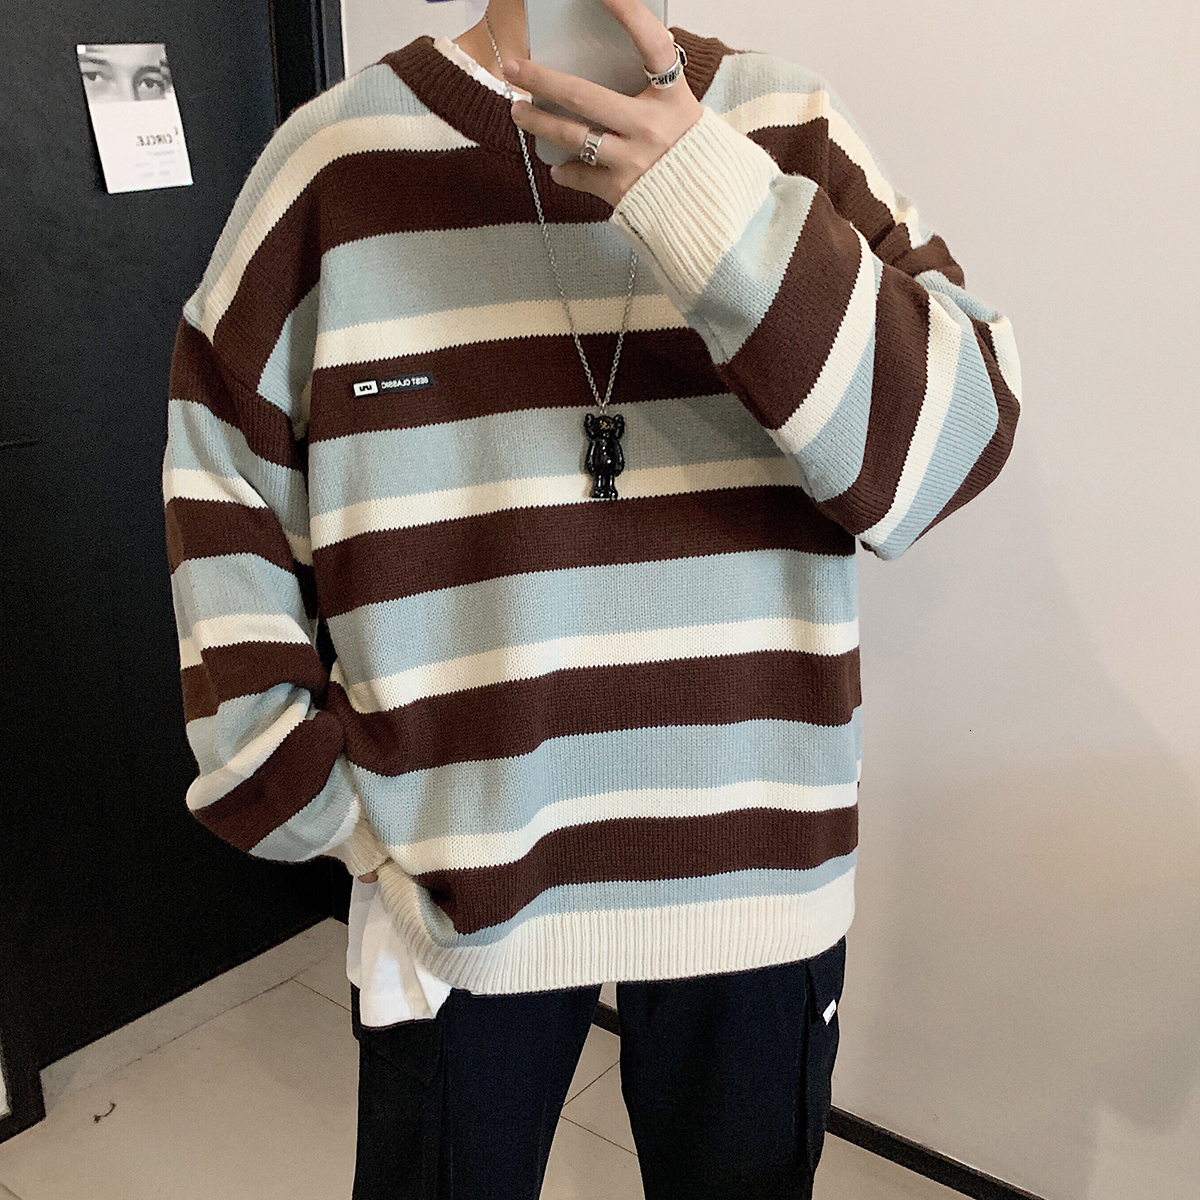 2019 Winter Men's In Warm Coats Casual Cashmere Pullover Stripe Knitting Woolen Sweater V-neck Sleeve Single Man Knit Size M-2XL